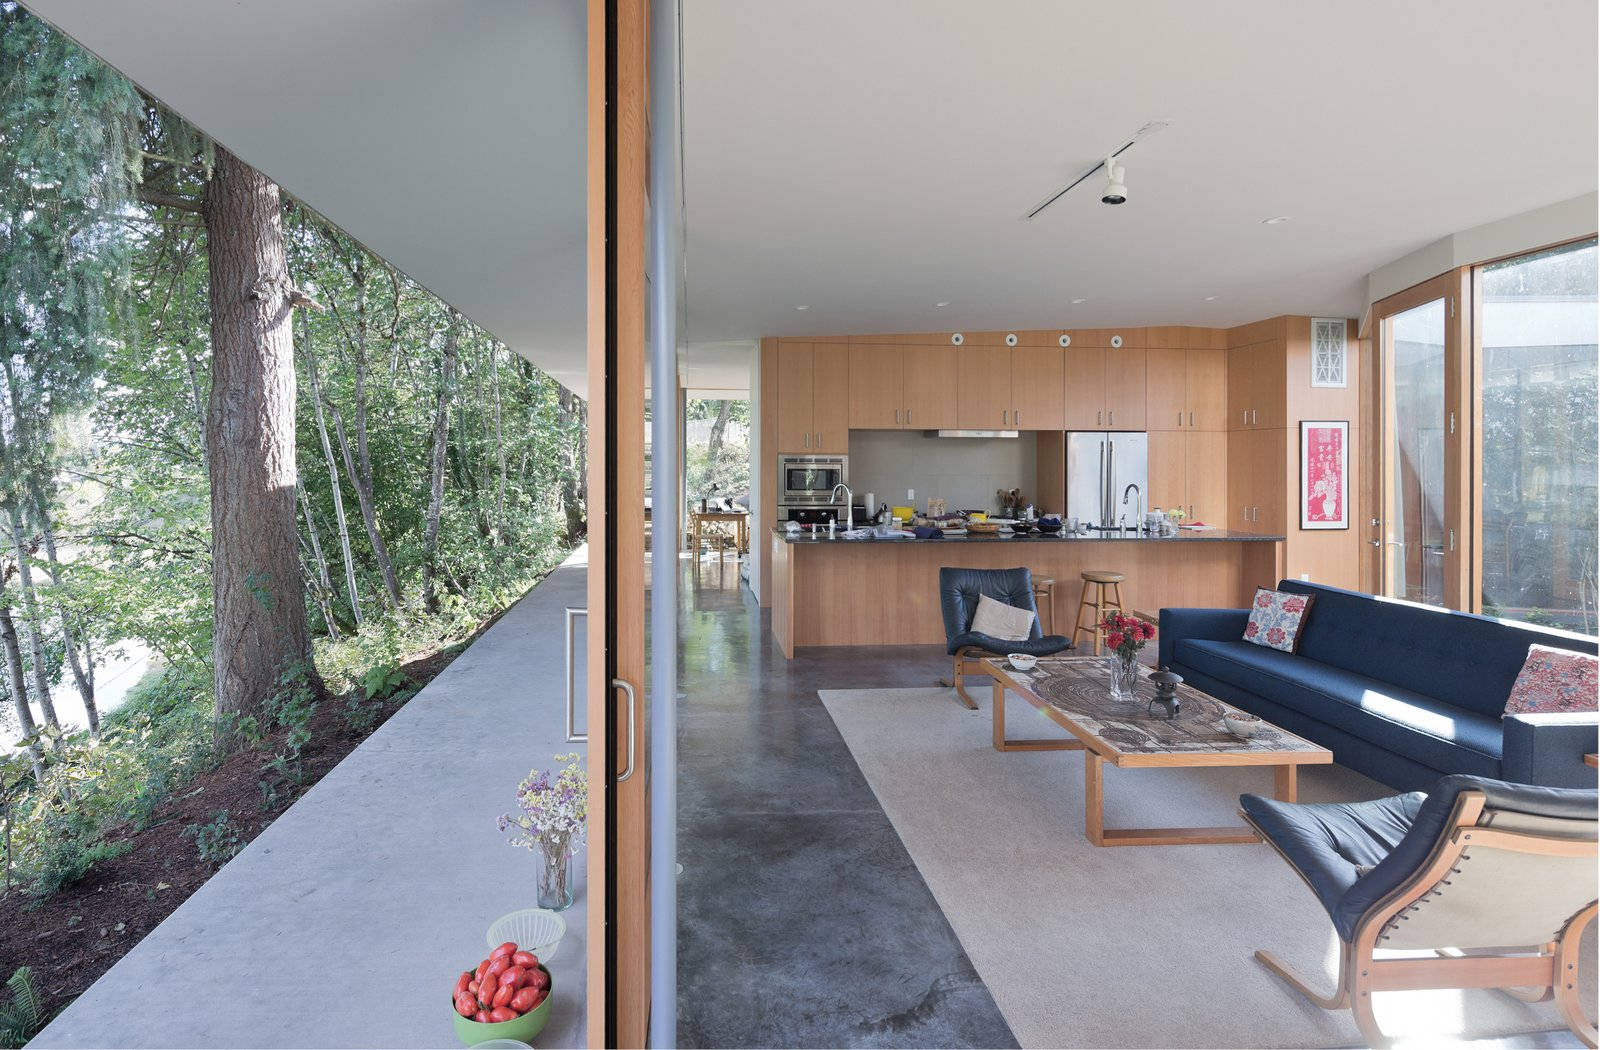 A matrix of rooms separate and connect around the L-shaped bathroom and storage cores made flexible by concealed doors at their ends.   The Courtyard House by NO ARCHITECTURE